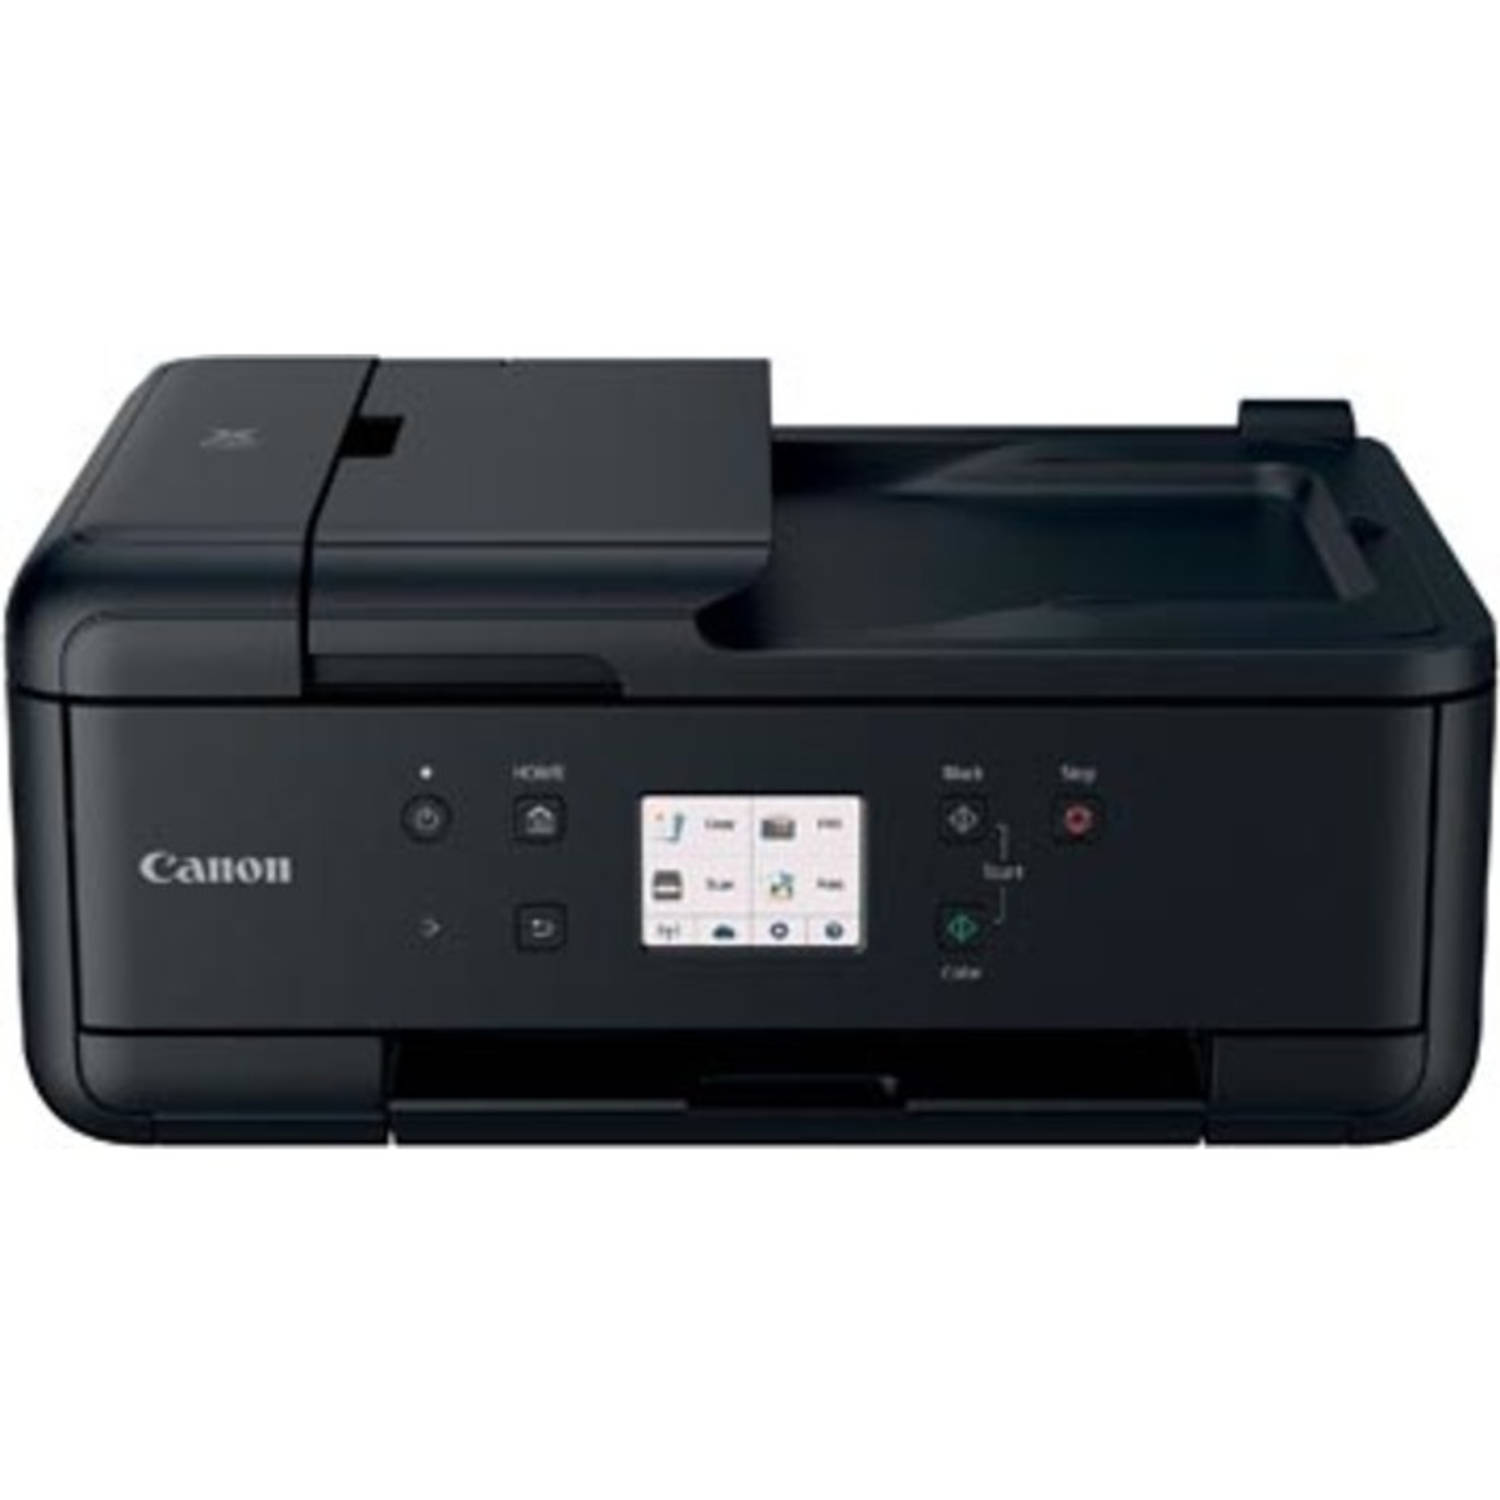 Canon All-in-One printer PIXMA TR7550